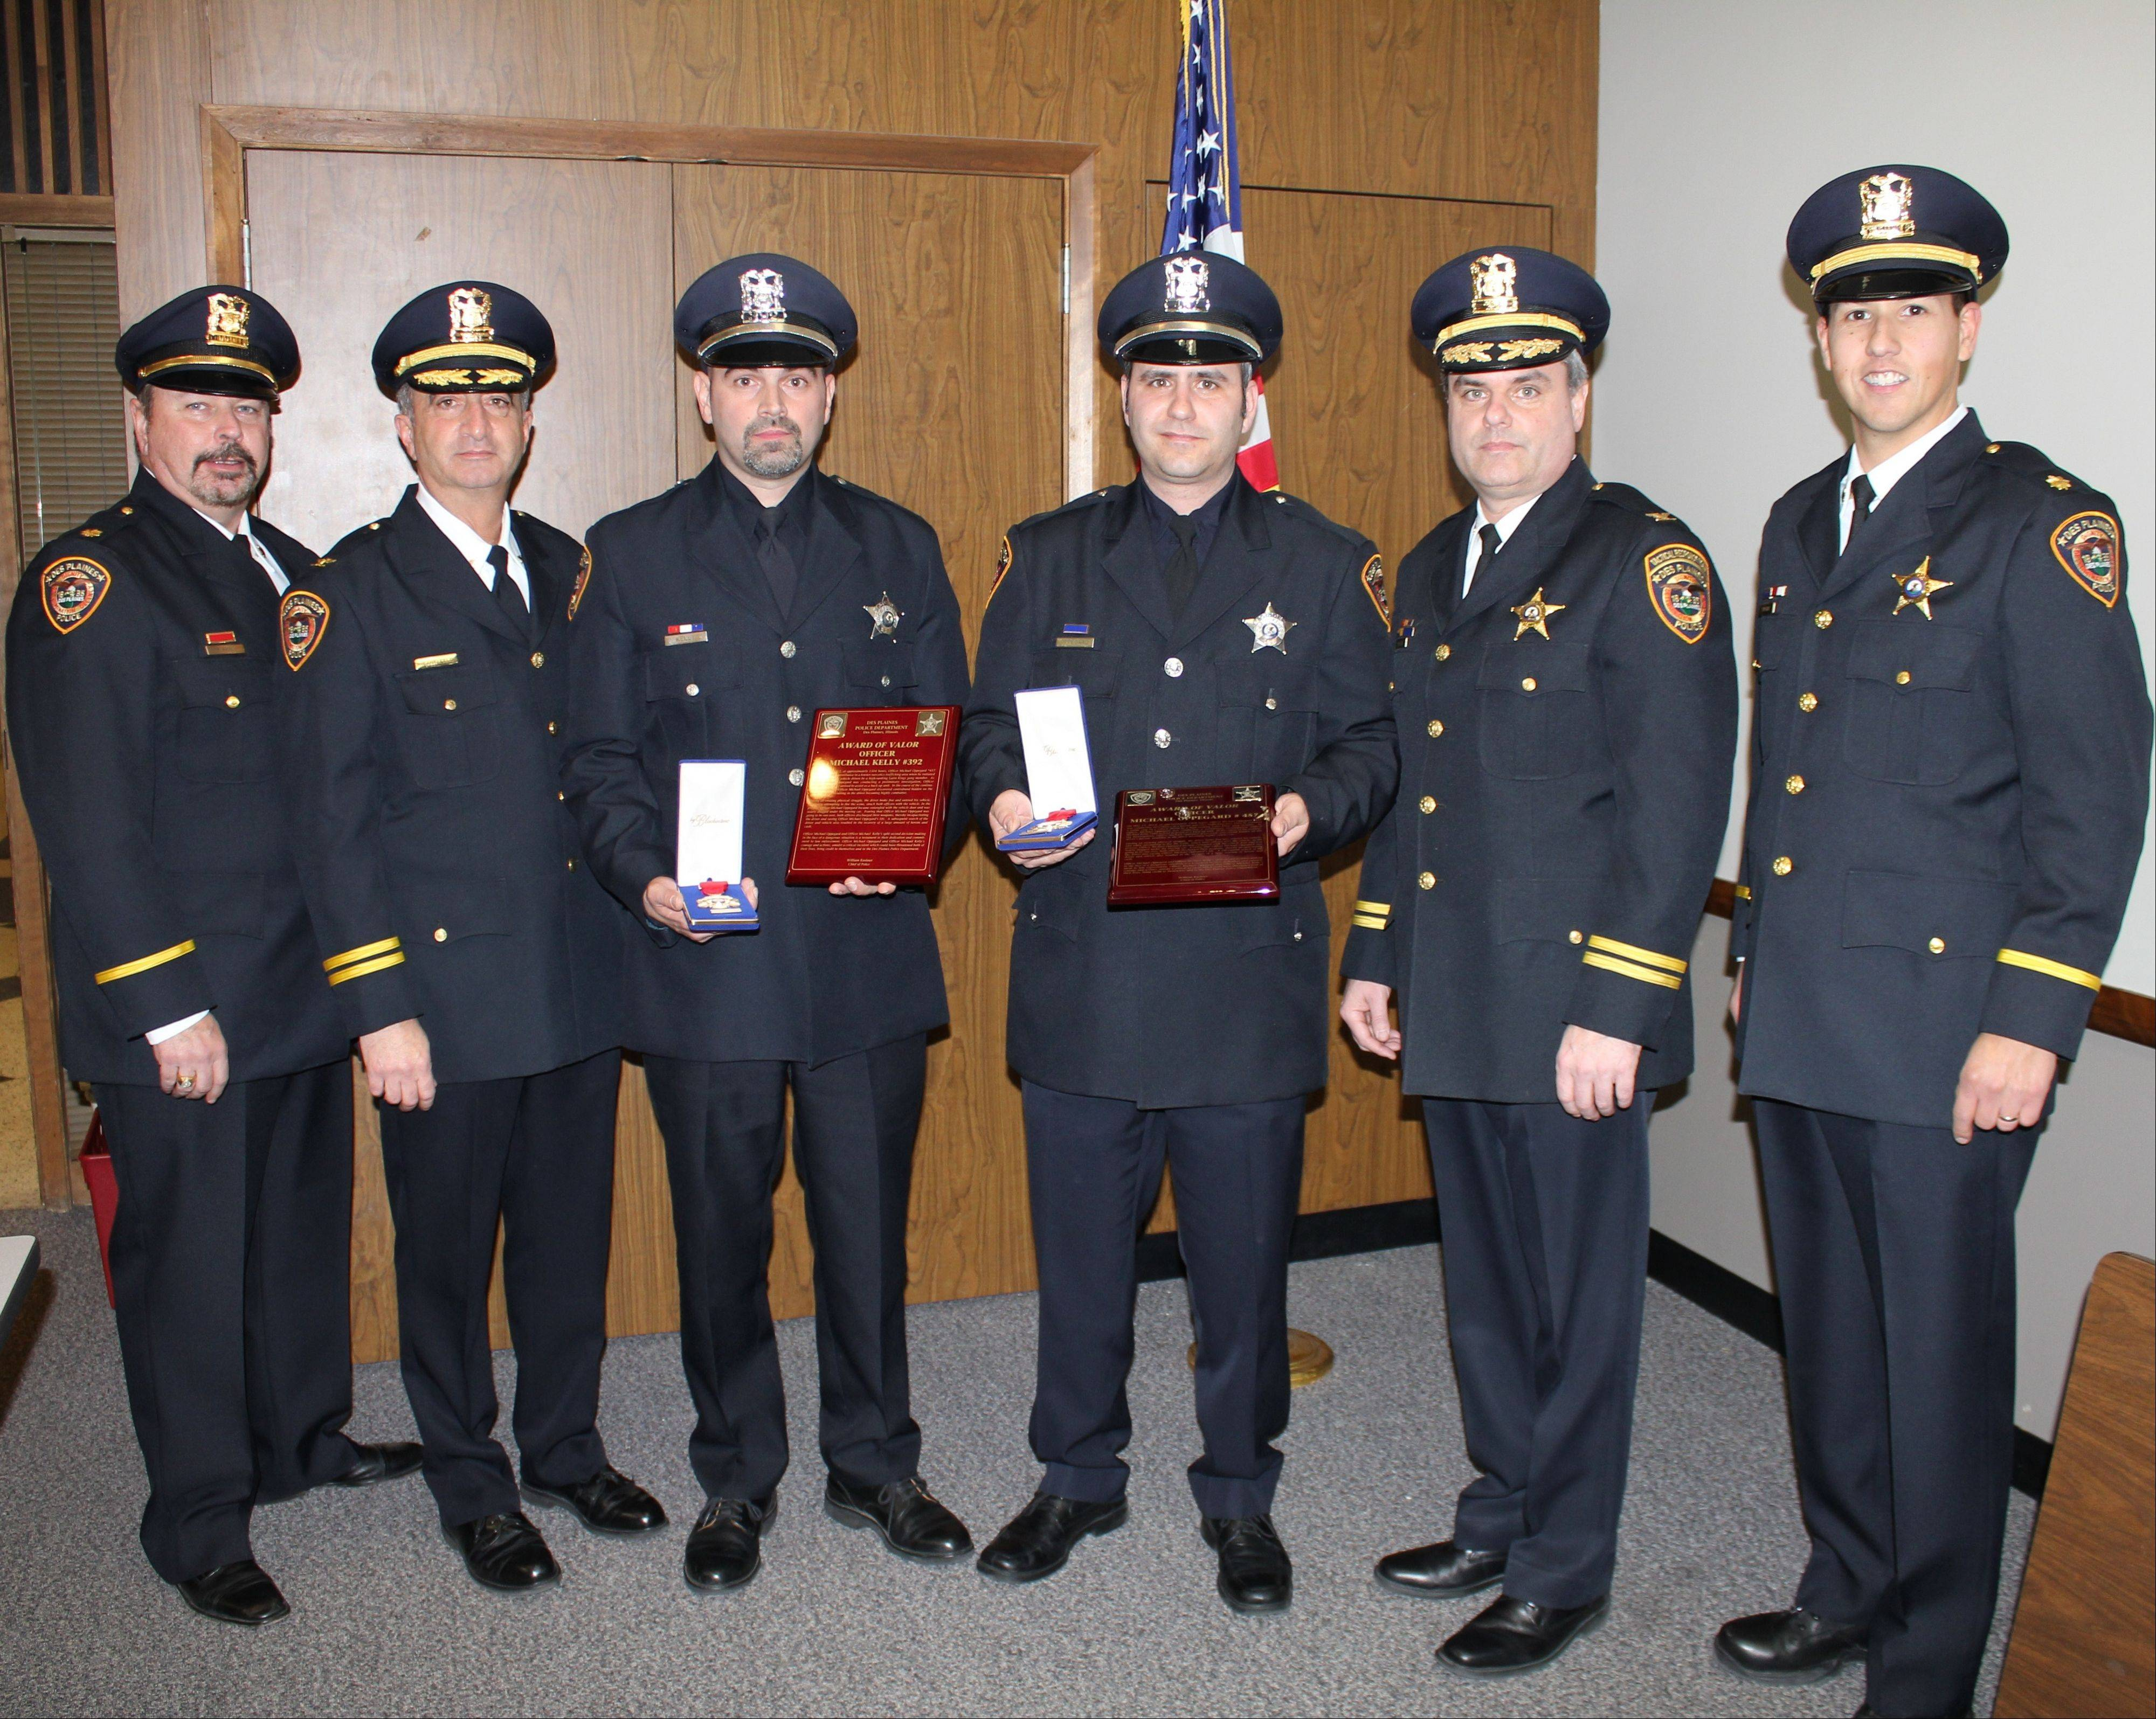 From left, Des Plaines Police Cmdr. Randy Akin, Deputy Chief Nick Treantafeles, officers Michael Kelly and Michael Oppegard, Deputy Chief Michael Kozak and Cmdr. Louis Wittmer are pictured here during a Jan. 7 presentation of the Award of Valor to Kelly and Oppegard at the monthly city council meeting.